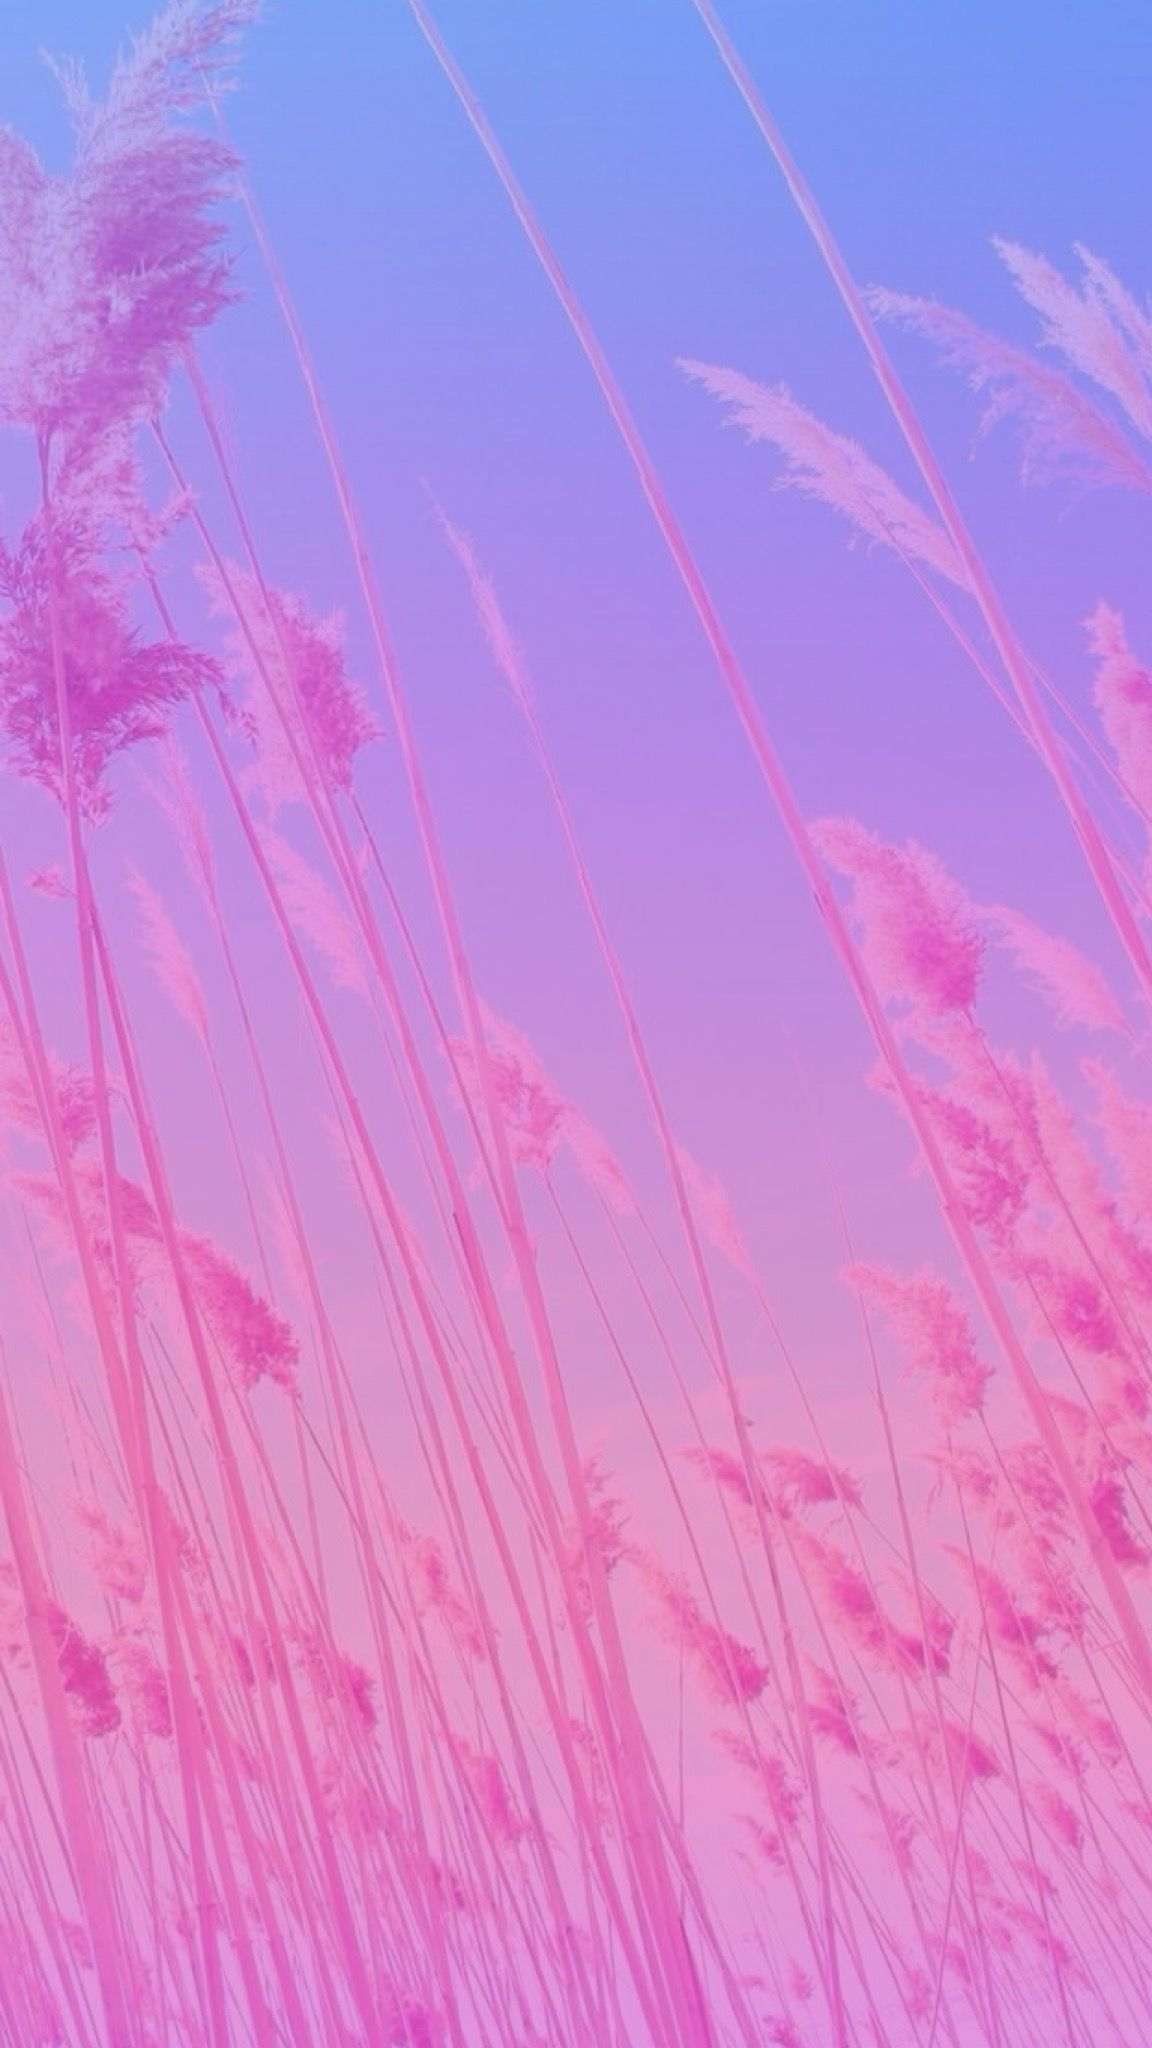 2560x1440px 2560x1440 Wallpaper For Youtube: Pastel Gradient Wallpapers